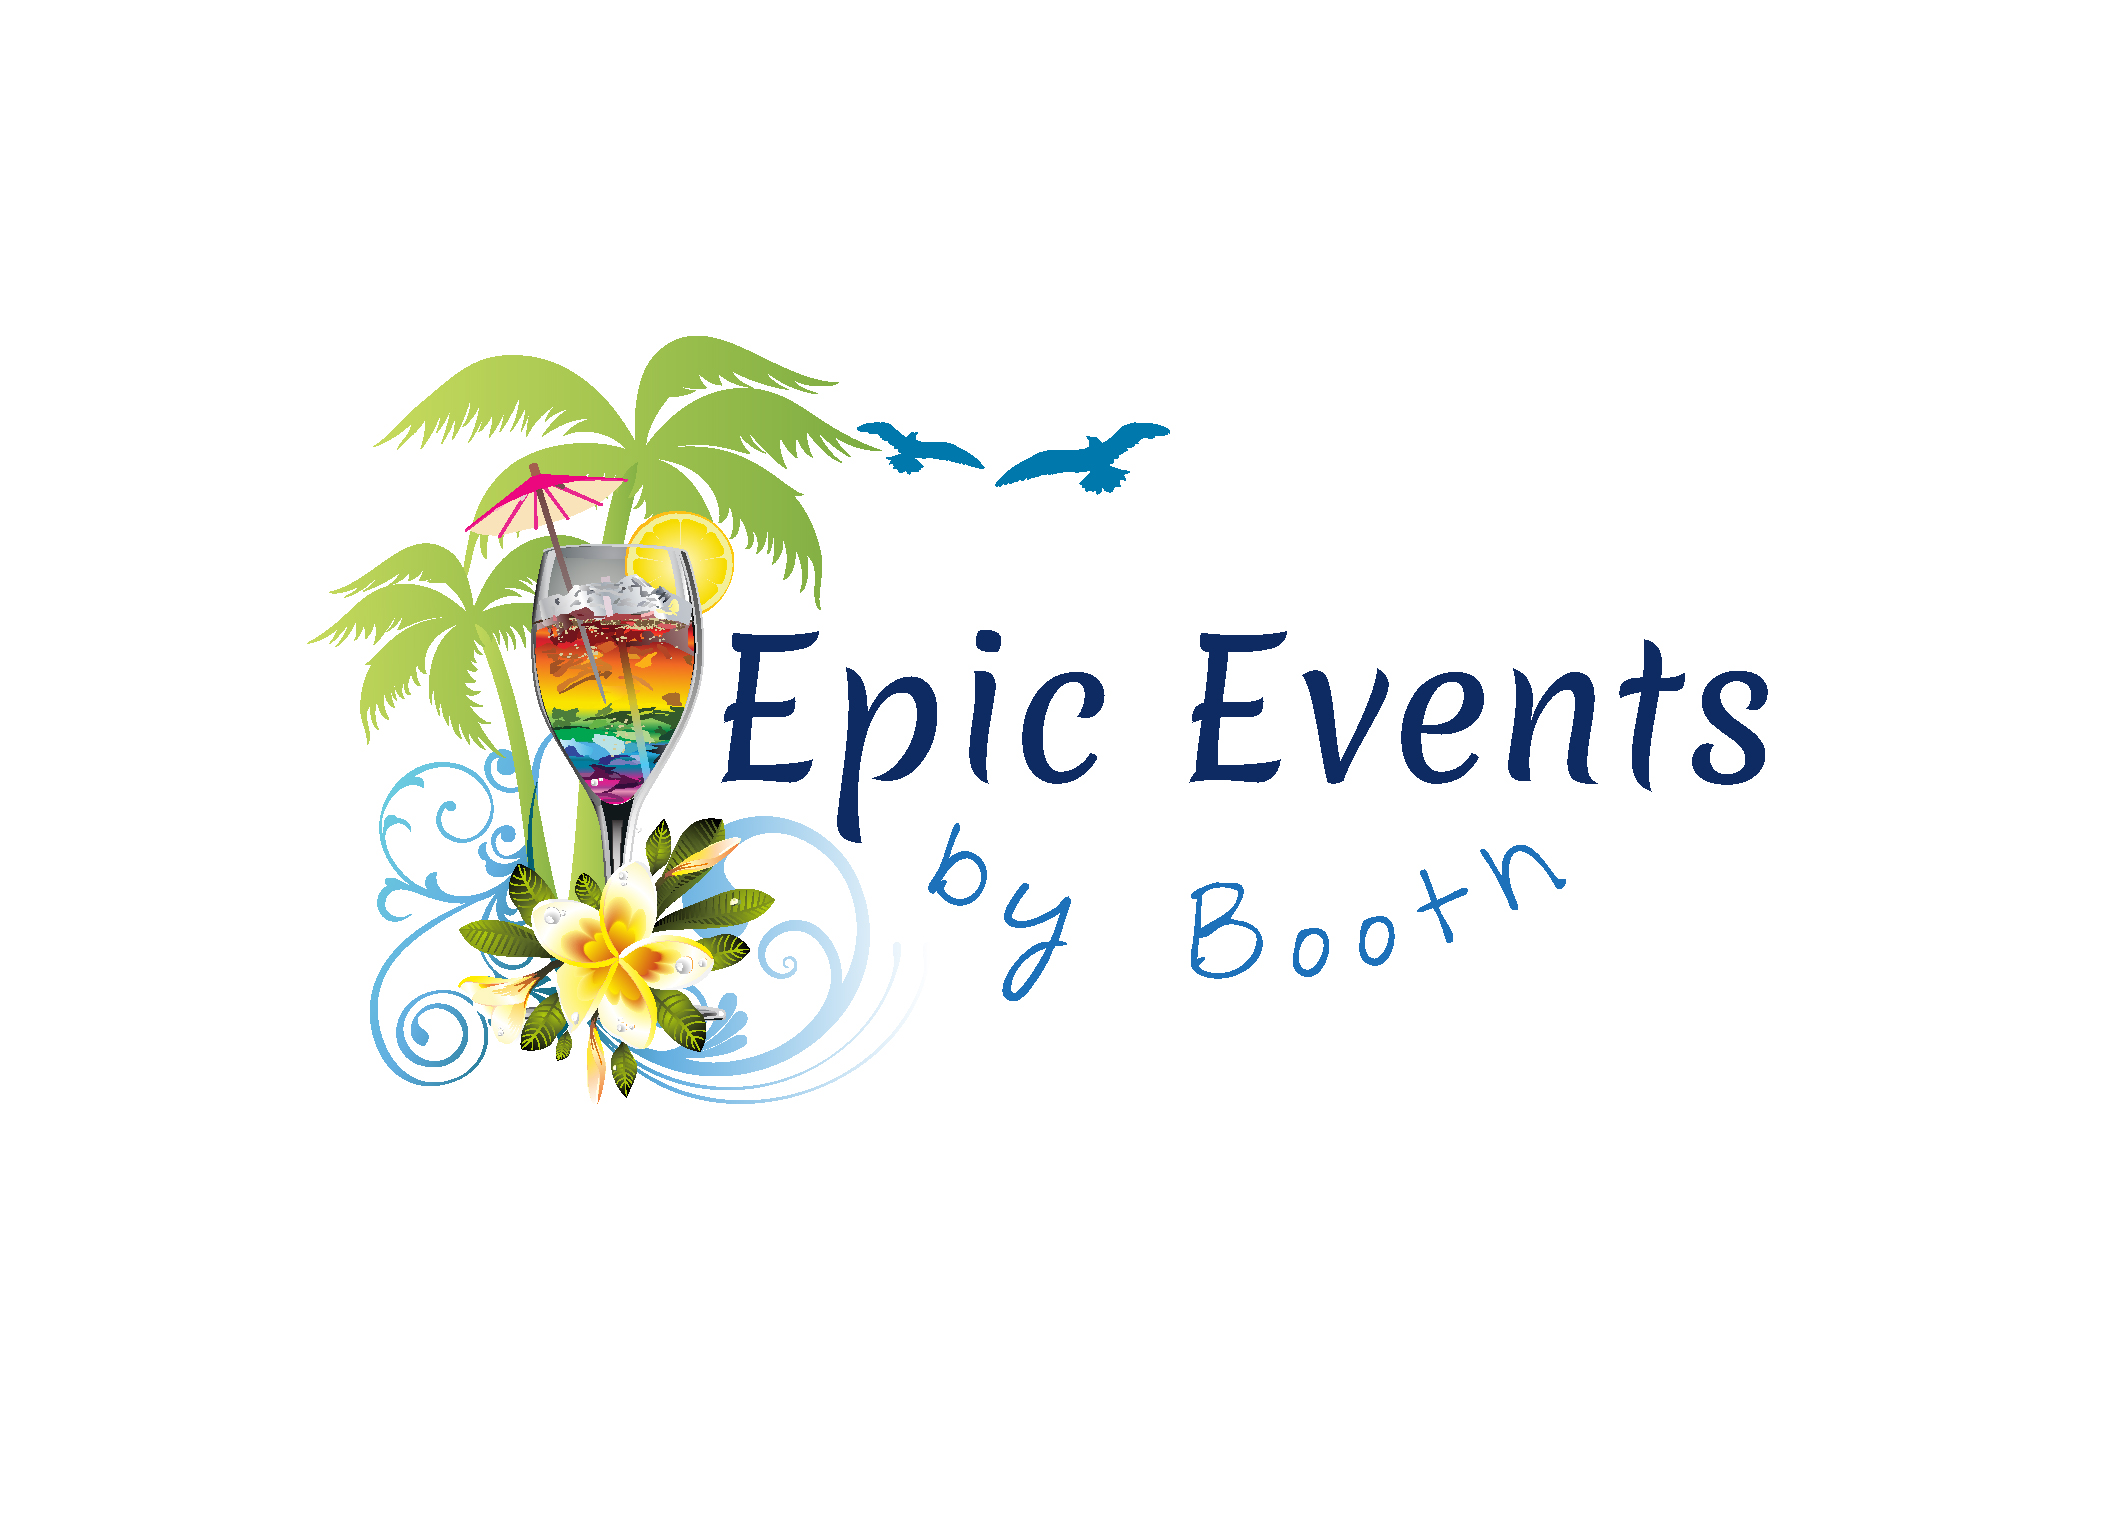 Epic Events by Booth, Inc. Logo